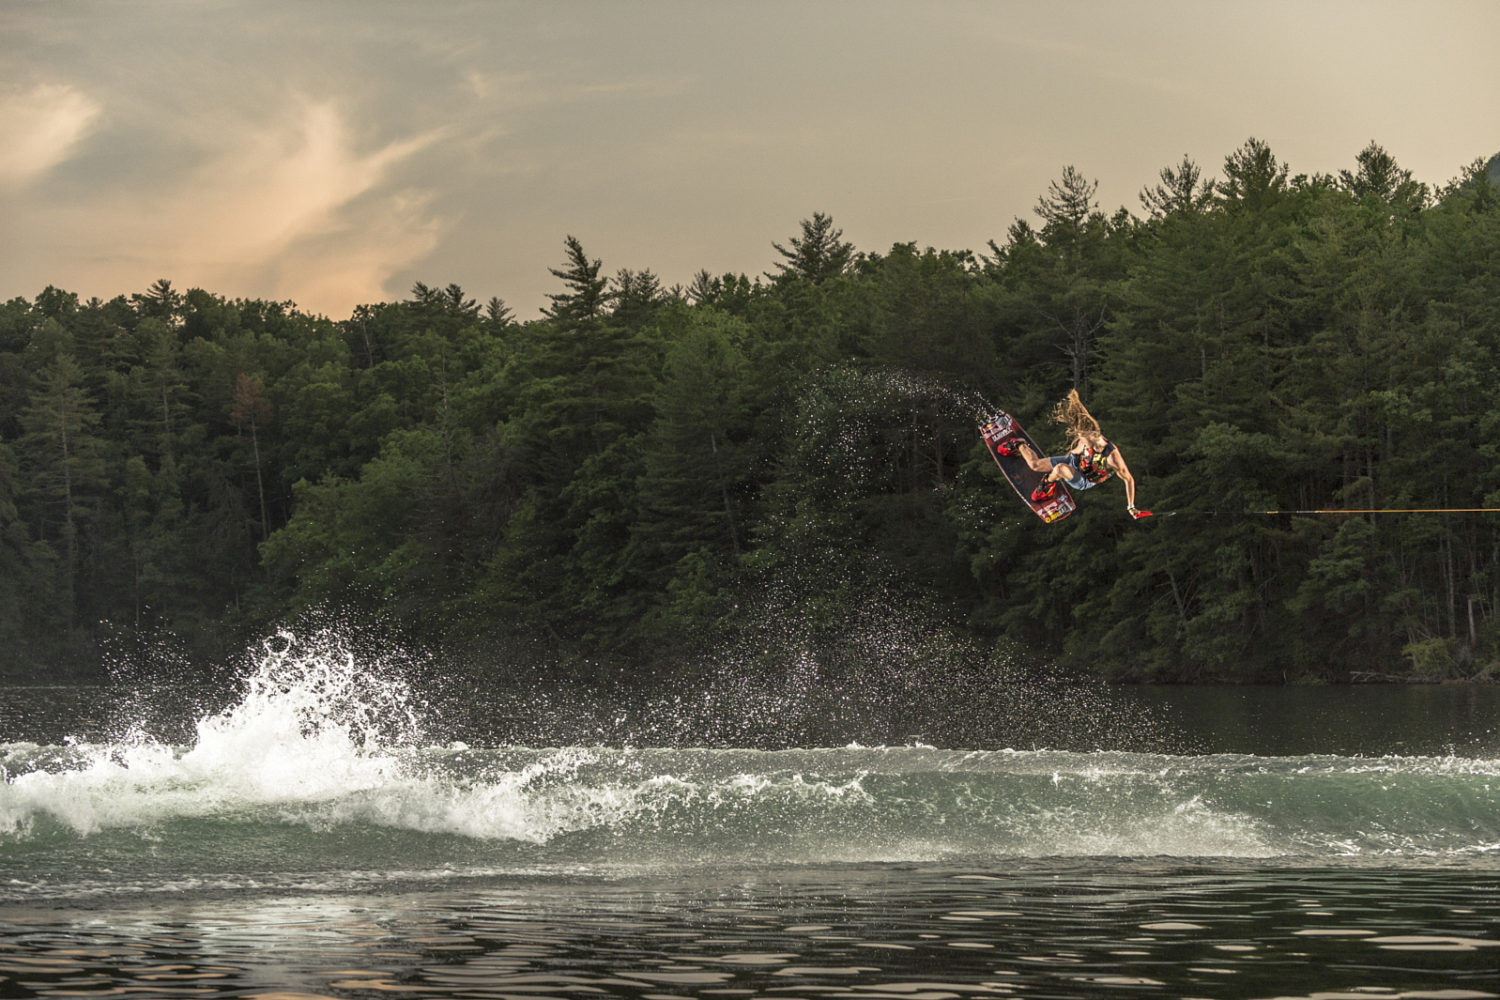 How Flash Helped A Pro Photographer Transition From Winter Sports To Wakeboarding